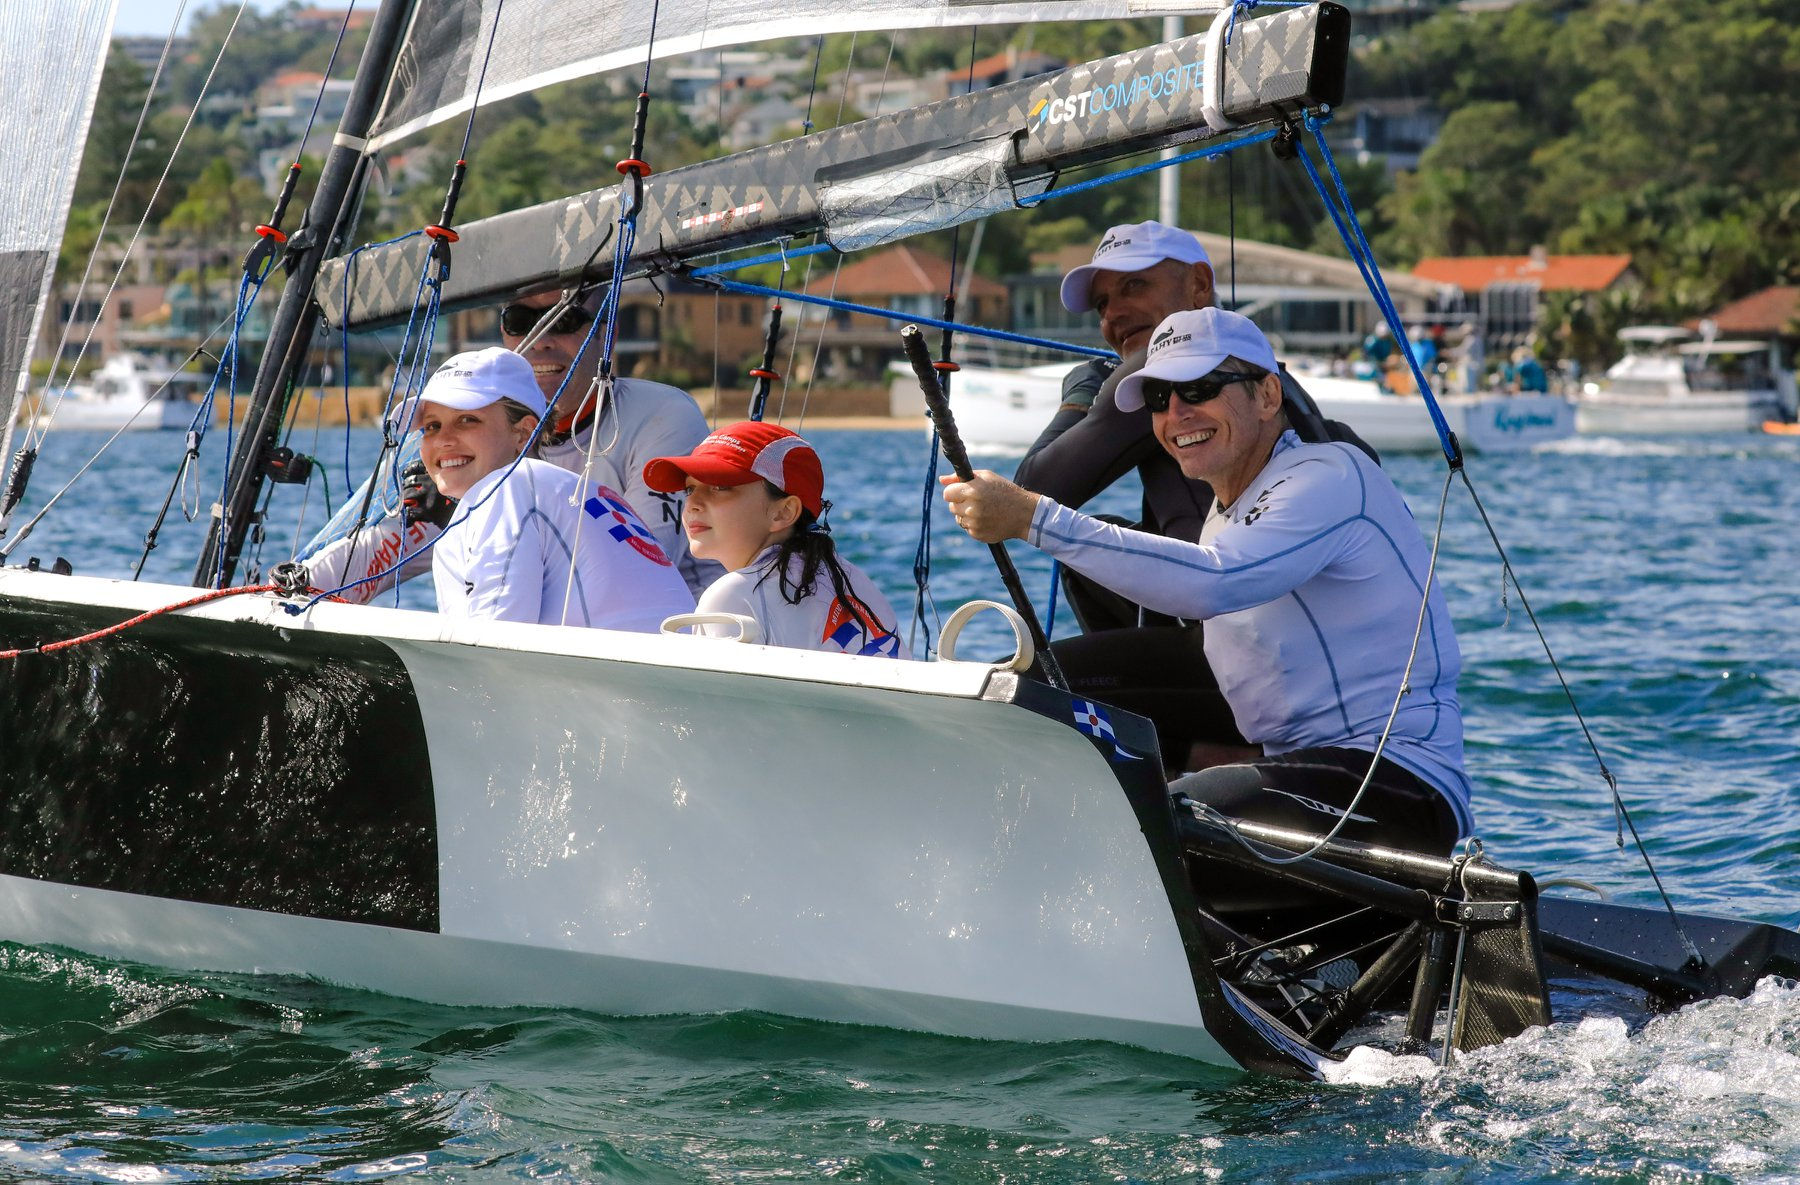 Youth's hijacking the Skiffs on Sydney Harbour